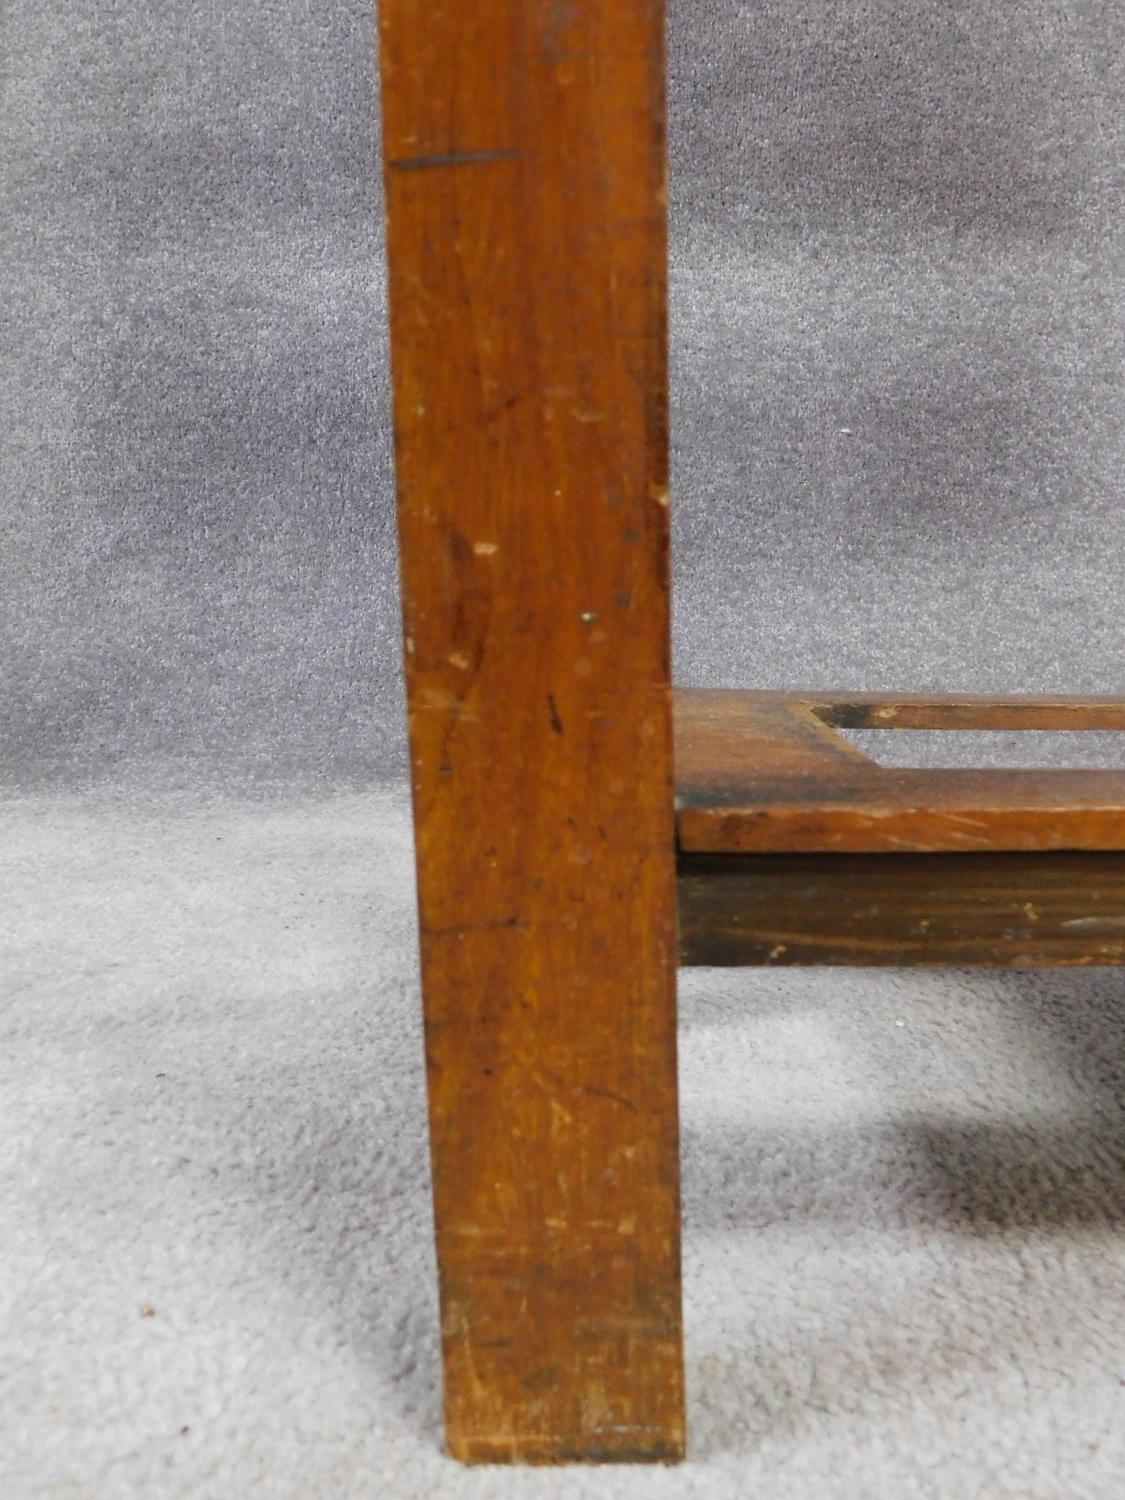 A 19th century Art Nouveau walnut hallstand with central mirror above glove compartment with - Image 5 of 6